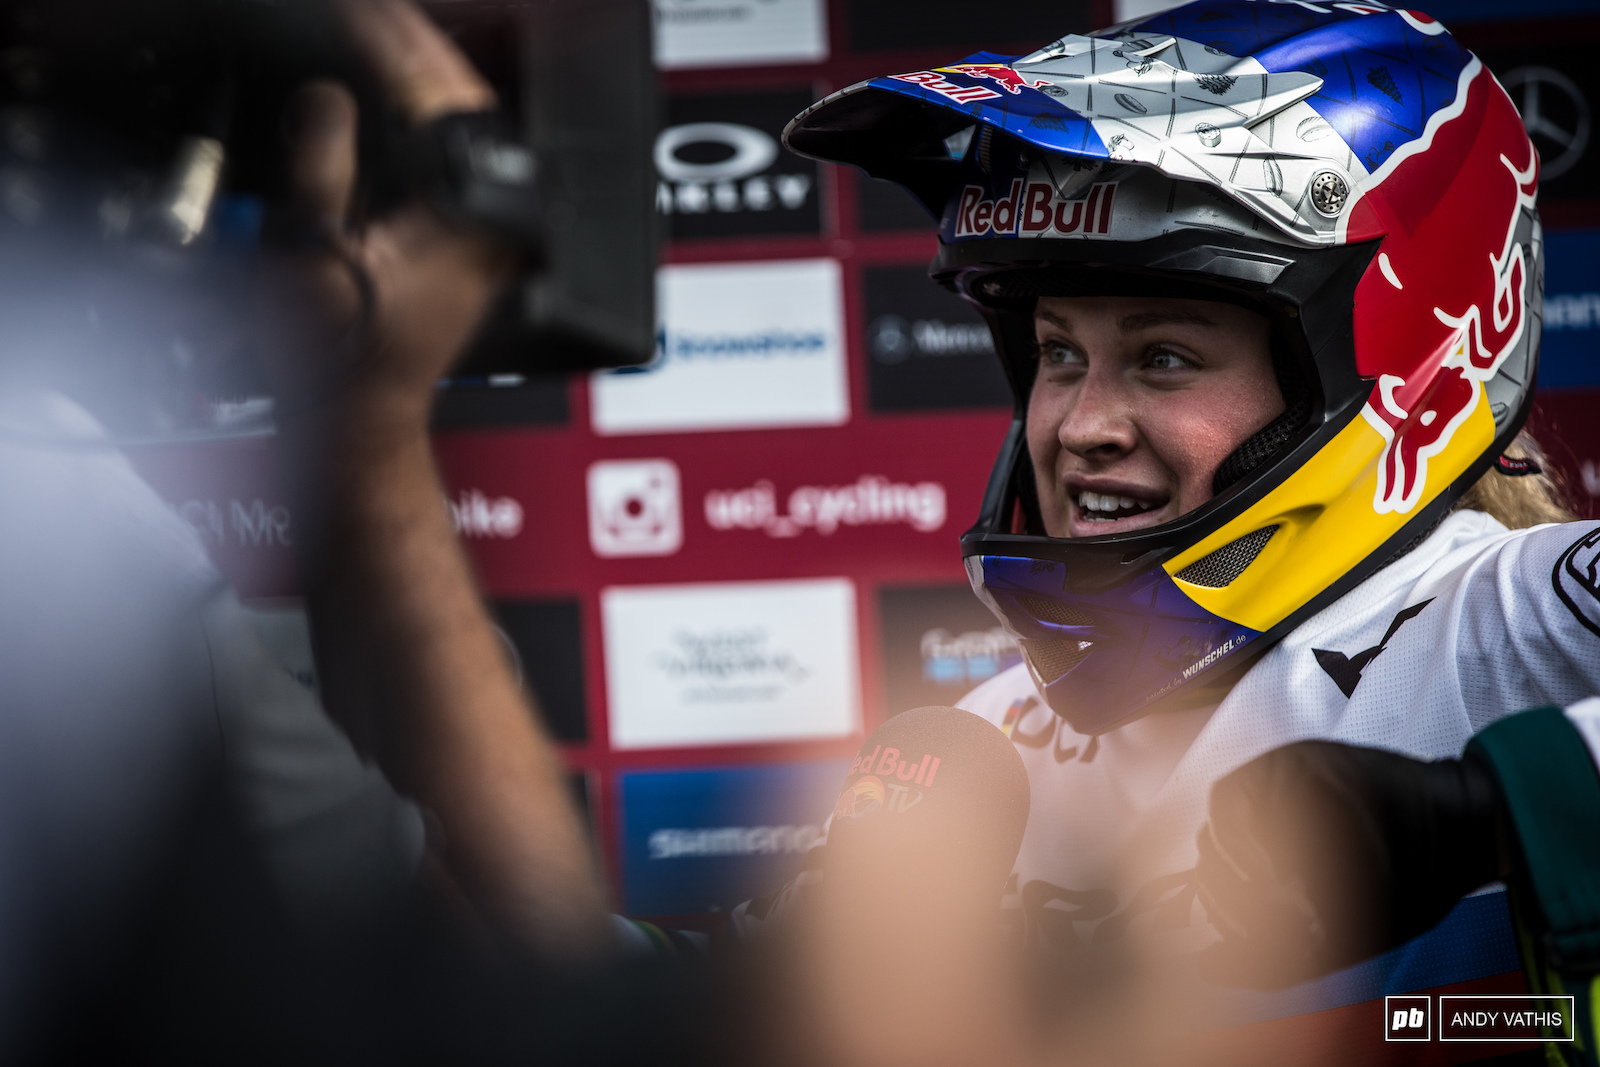 The junior women s field must have let out a sigh of relief today as Vali moves on up to the elites next year. She has absolutely ravaged the junior field the last two years.